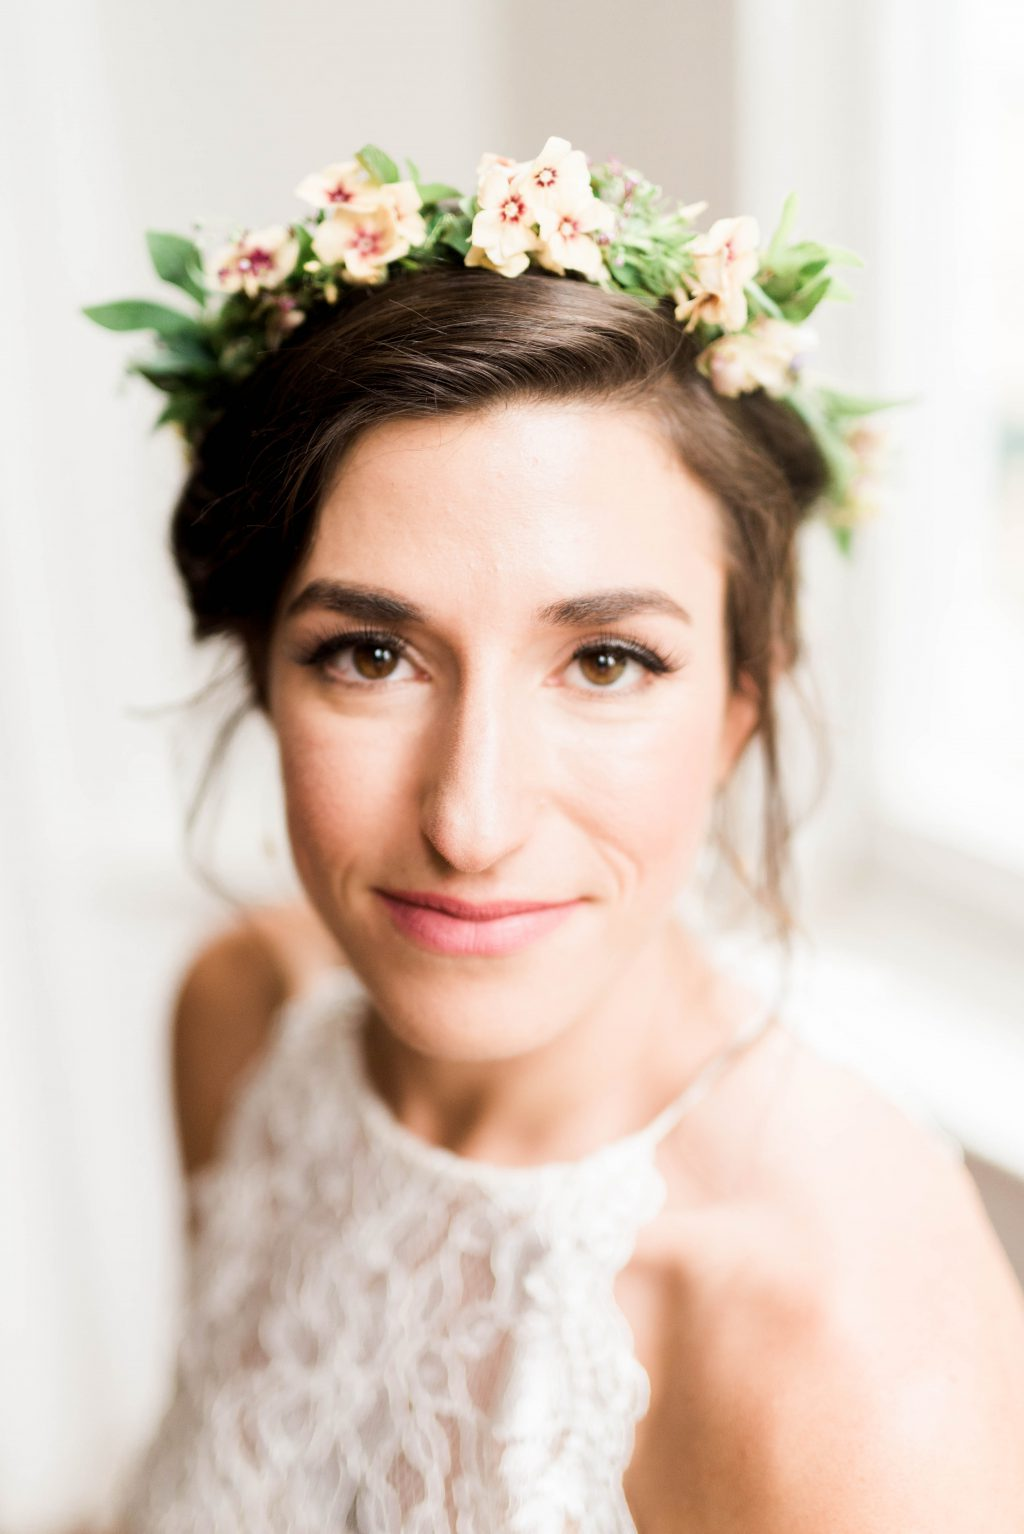 awbury-arboretum-wedding-DIY-boho-summer-haley-richter-photography-038